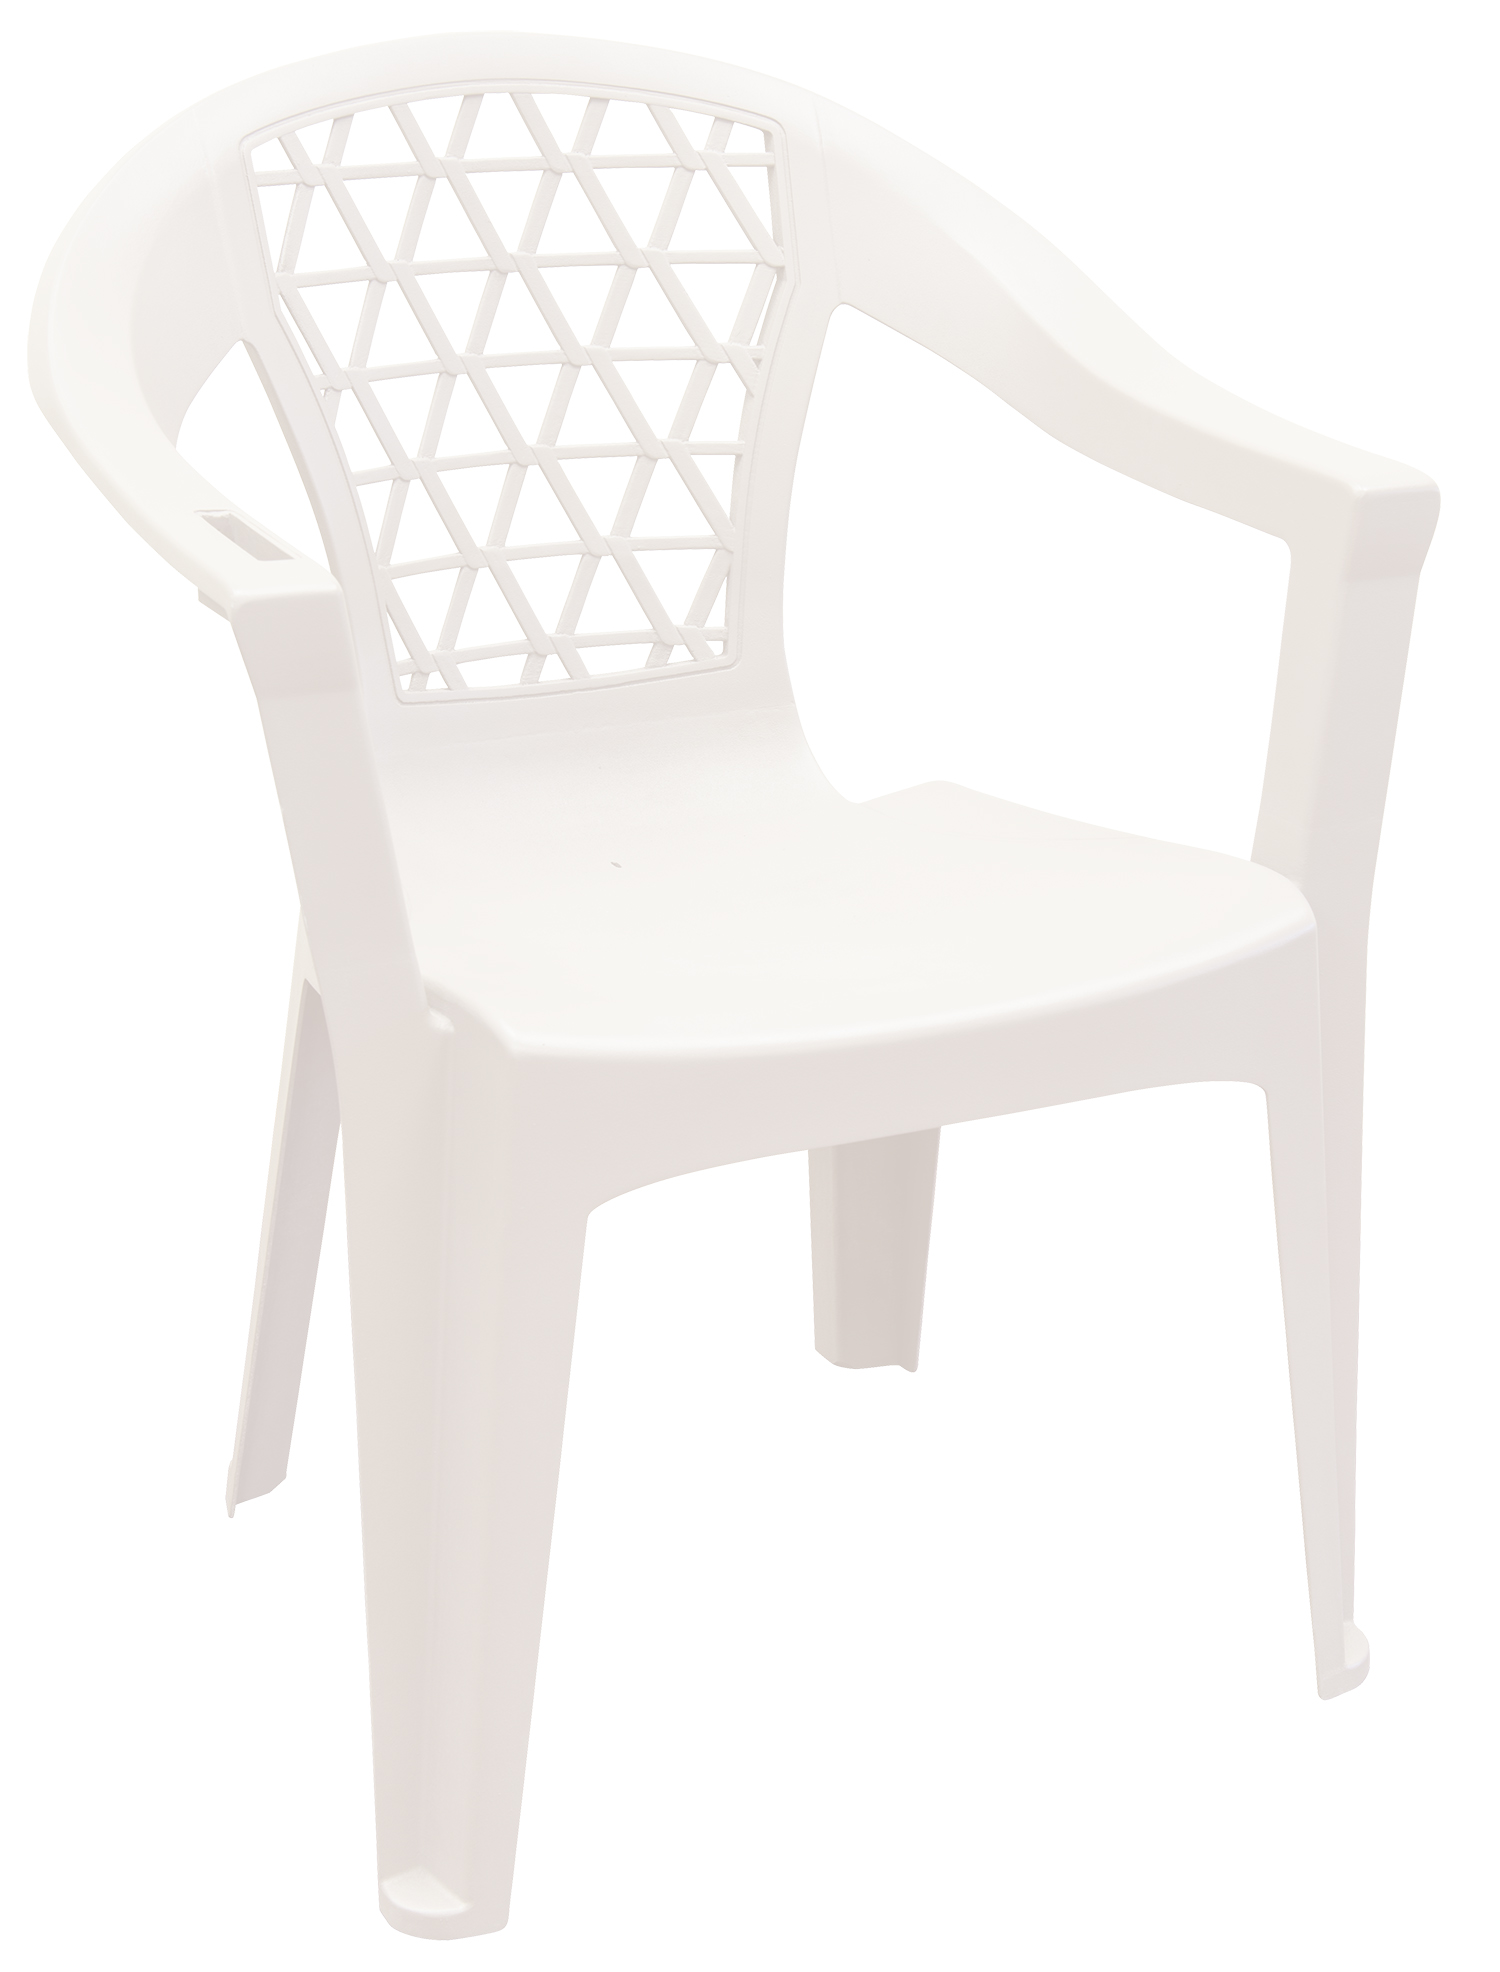 adams penza outdoor resin stack chair with phone holder plastic patio furniture white